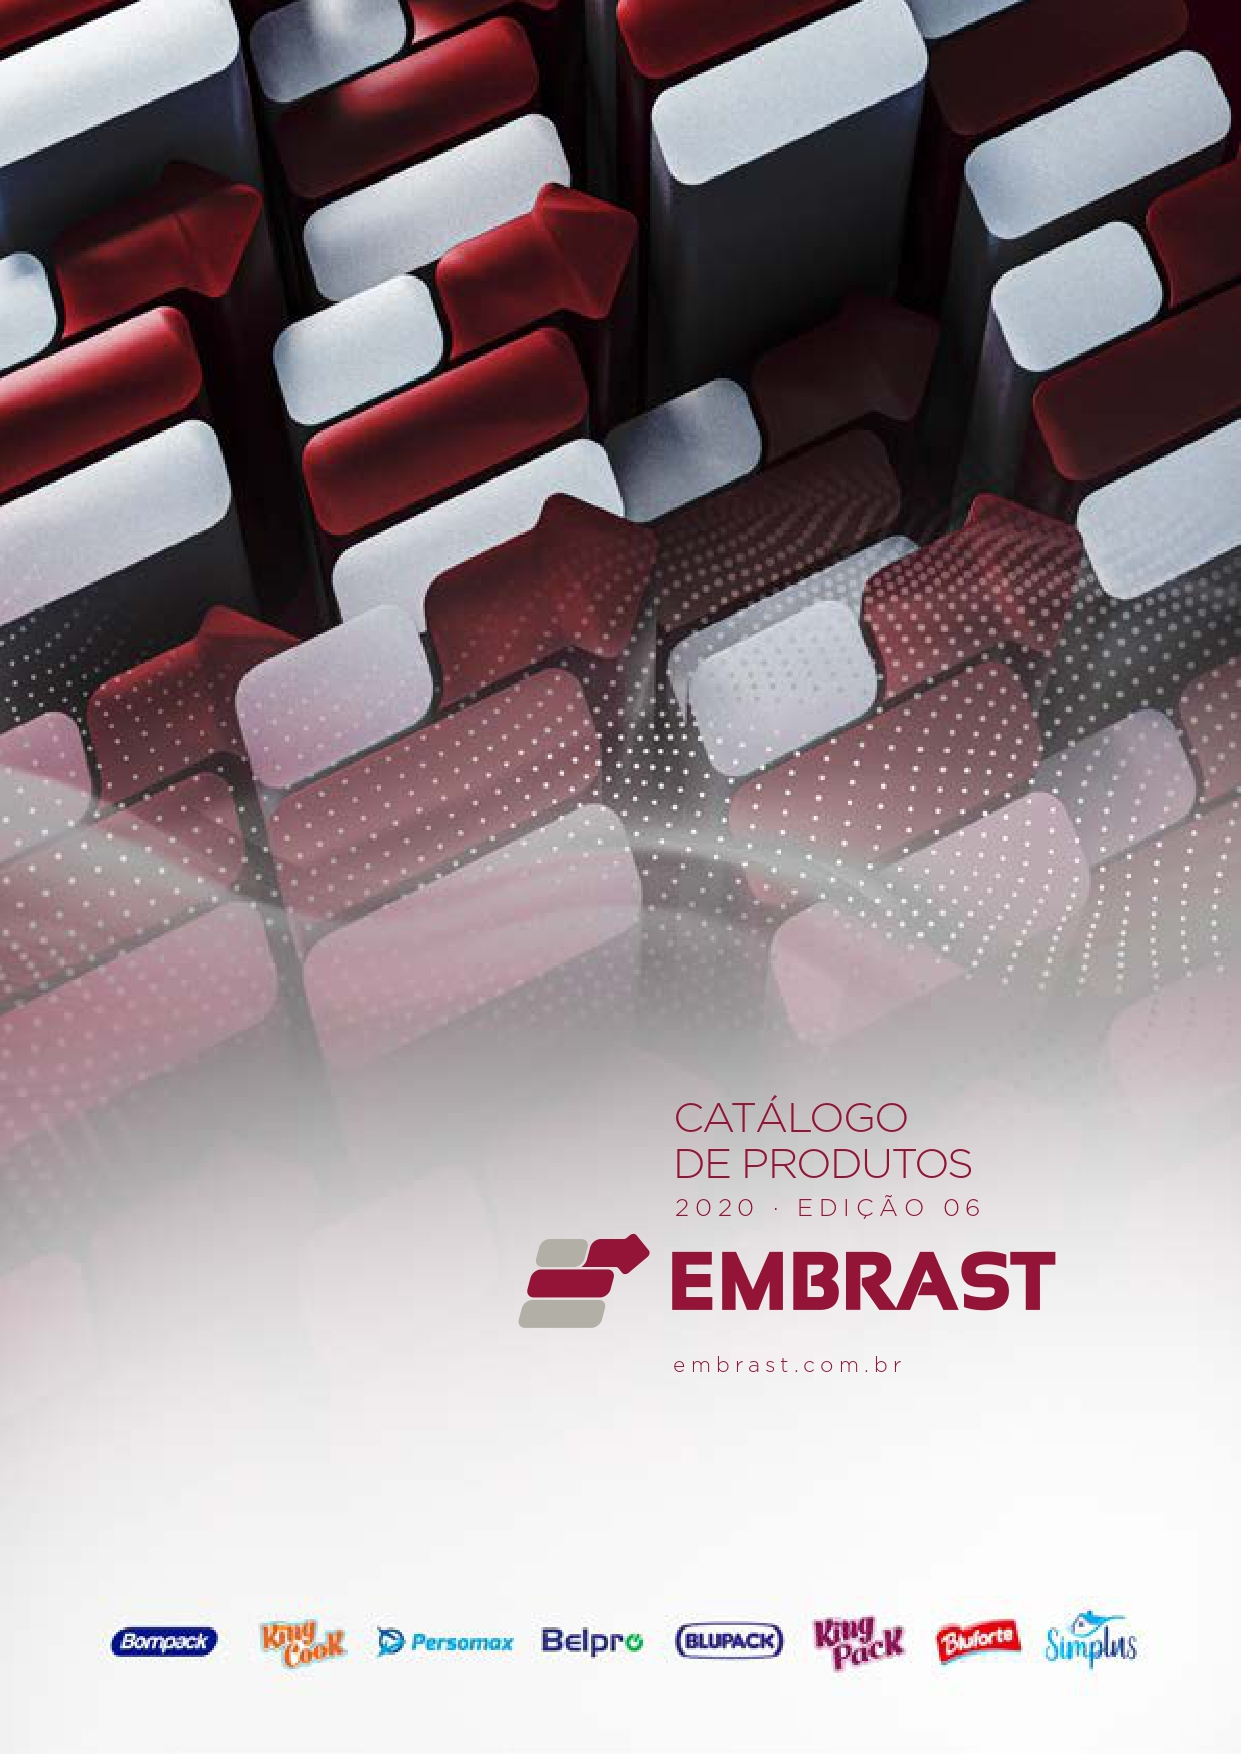 job_23608_embrast_catalogo_bompack_distribuidor_210x297mm_web_page-0001